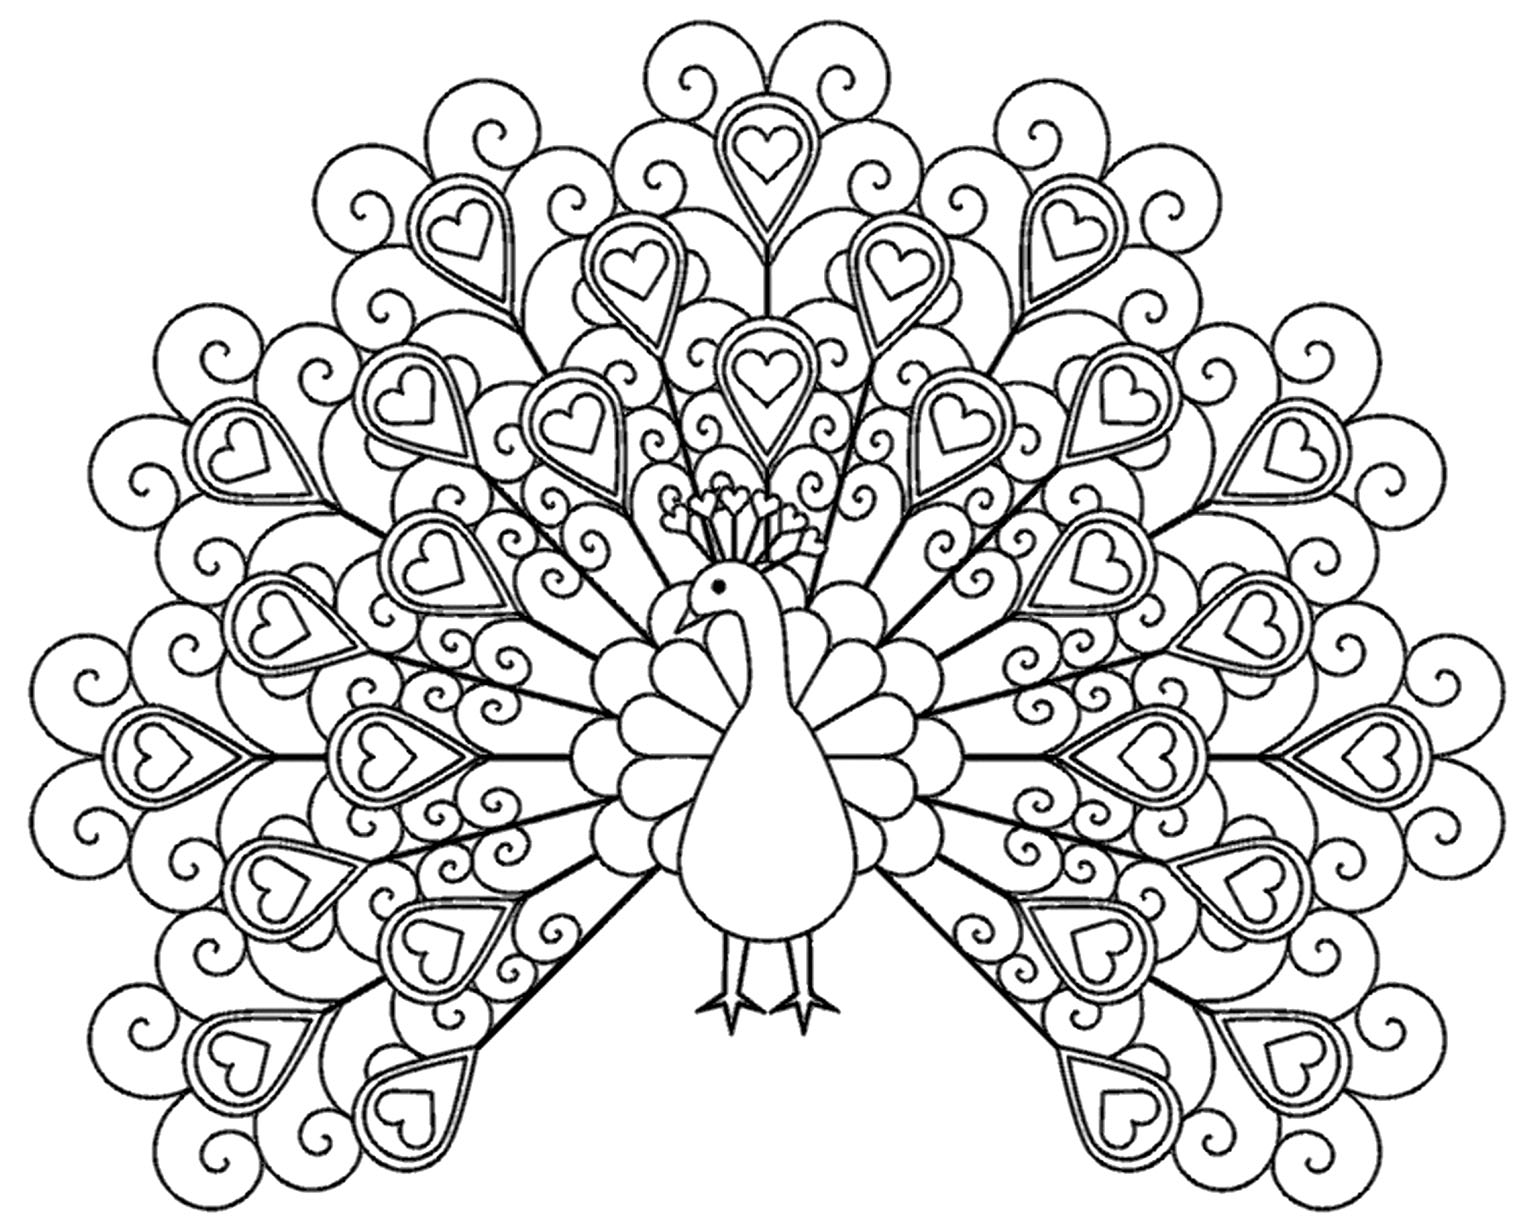 picture of peacock to color peacock coloring pages to picture color of peacock